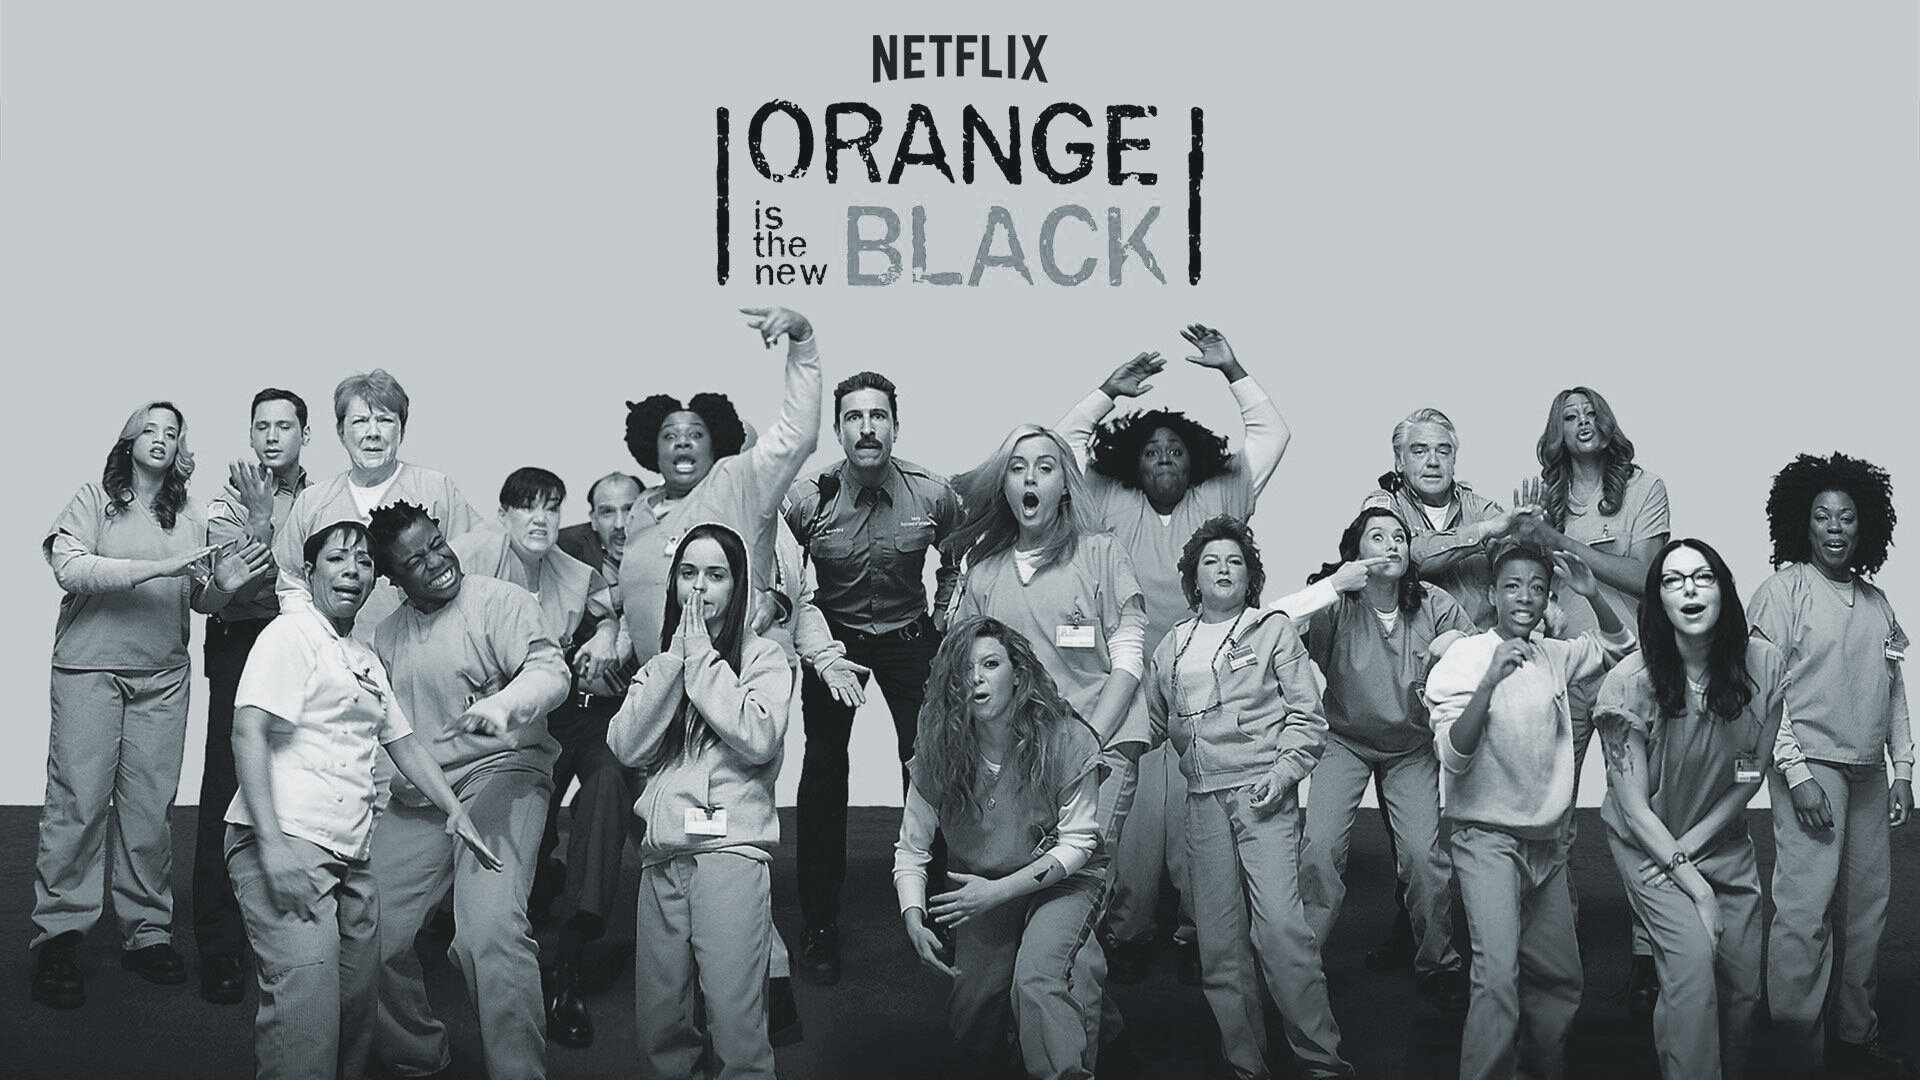 Orange is the new black banner BW.jpg